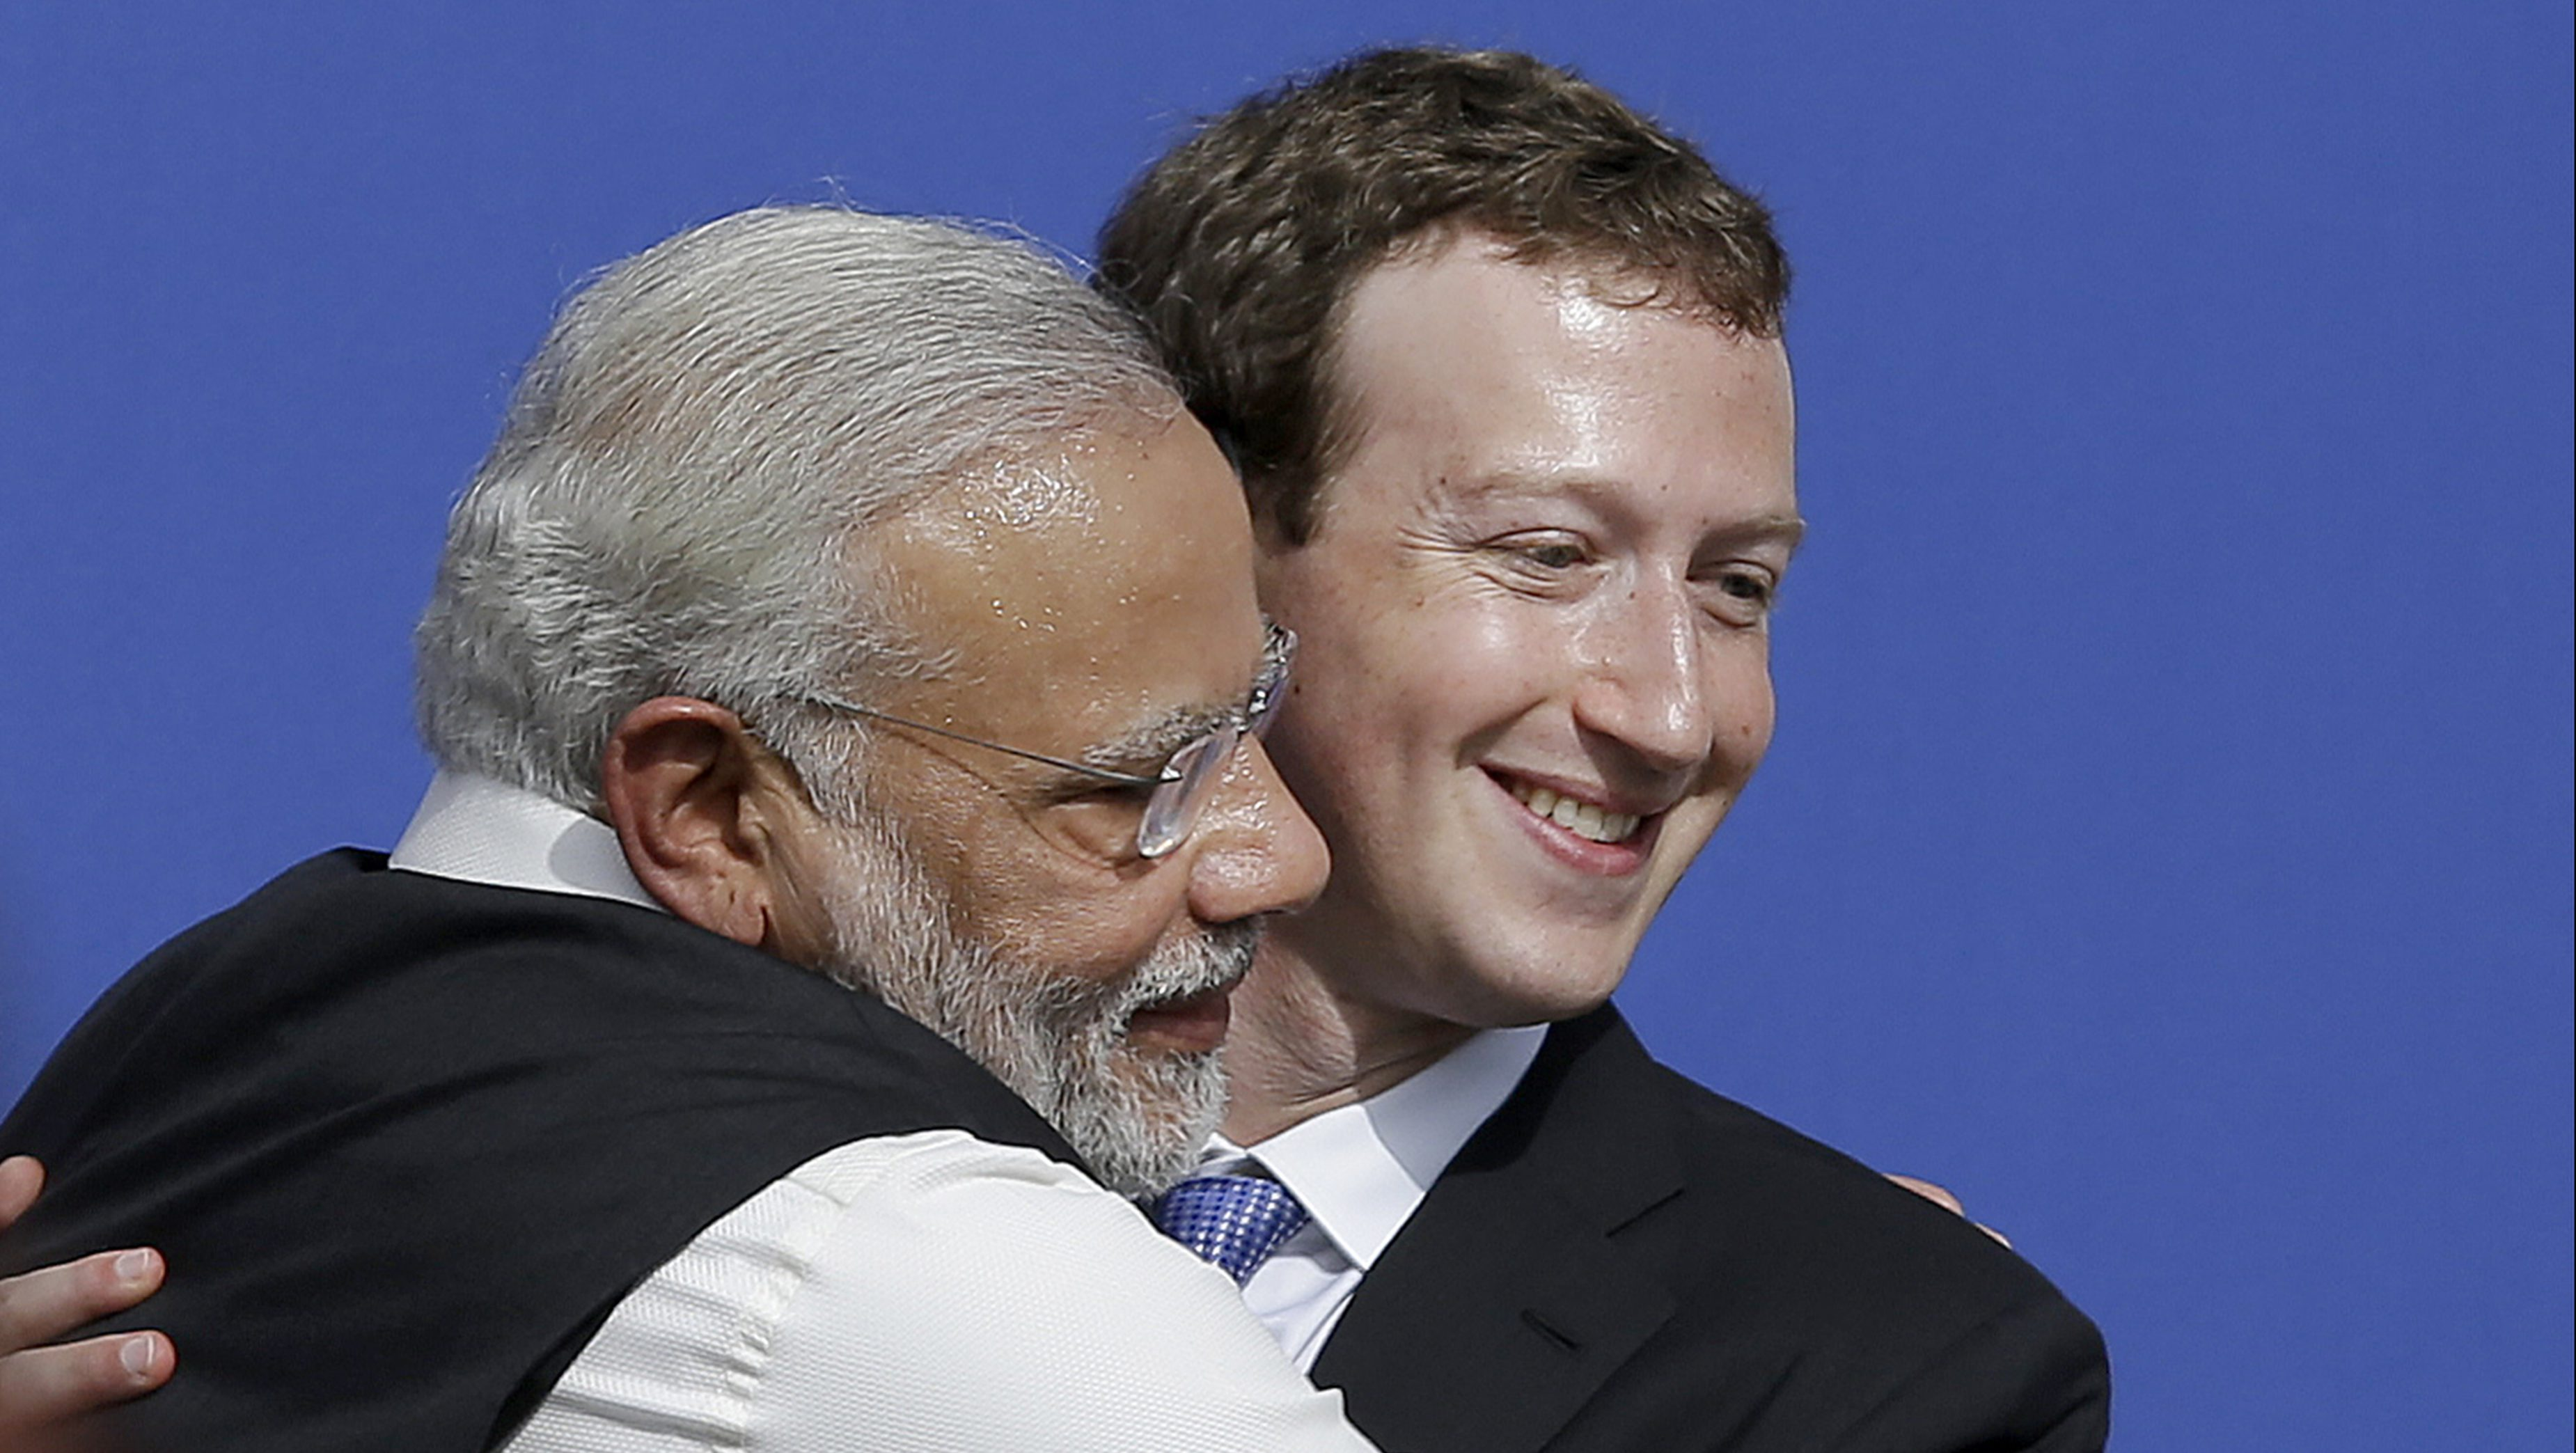 FILE - In this Sept. 27, 2015, file photo, Facebook CEO Mark Zuckerberg, right, hugs Prime Minister of India Narendra Modi at Facebook in Menlo Park, Calif. U.S. President Donald Trump should have been ready for a bear hug from Narendra Modi this week in Washington. The folksy embrace has become a signature move for the Indian prime minister in greeting global leaders and celebrities alike. (AP Photo/Jeff Chiu, File)